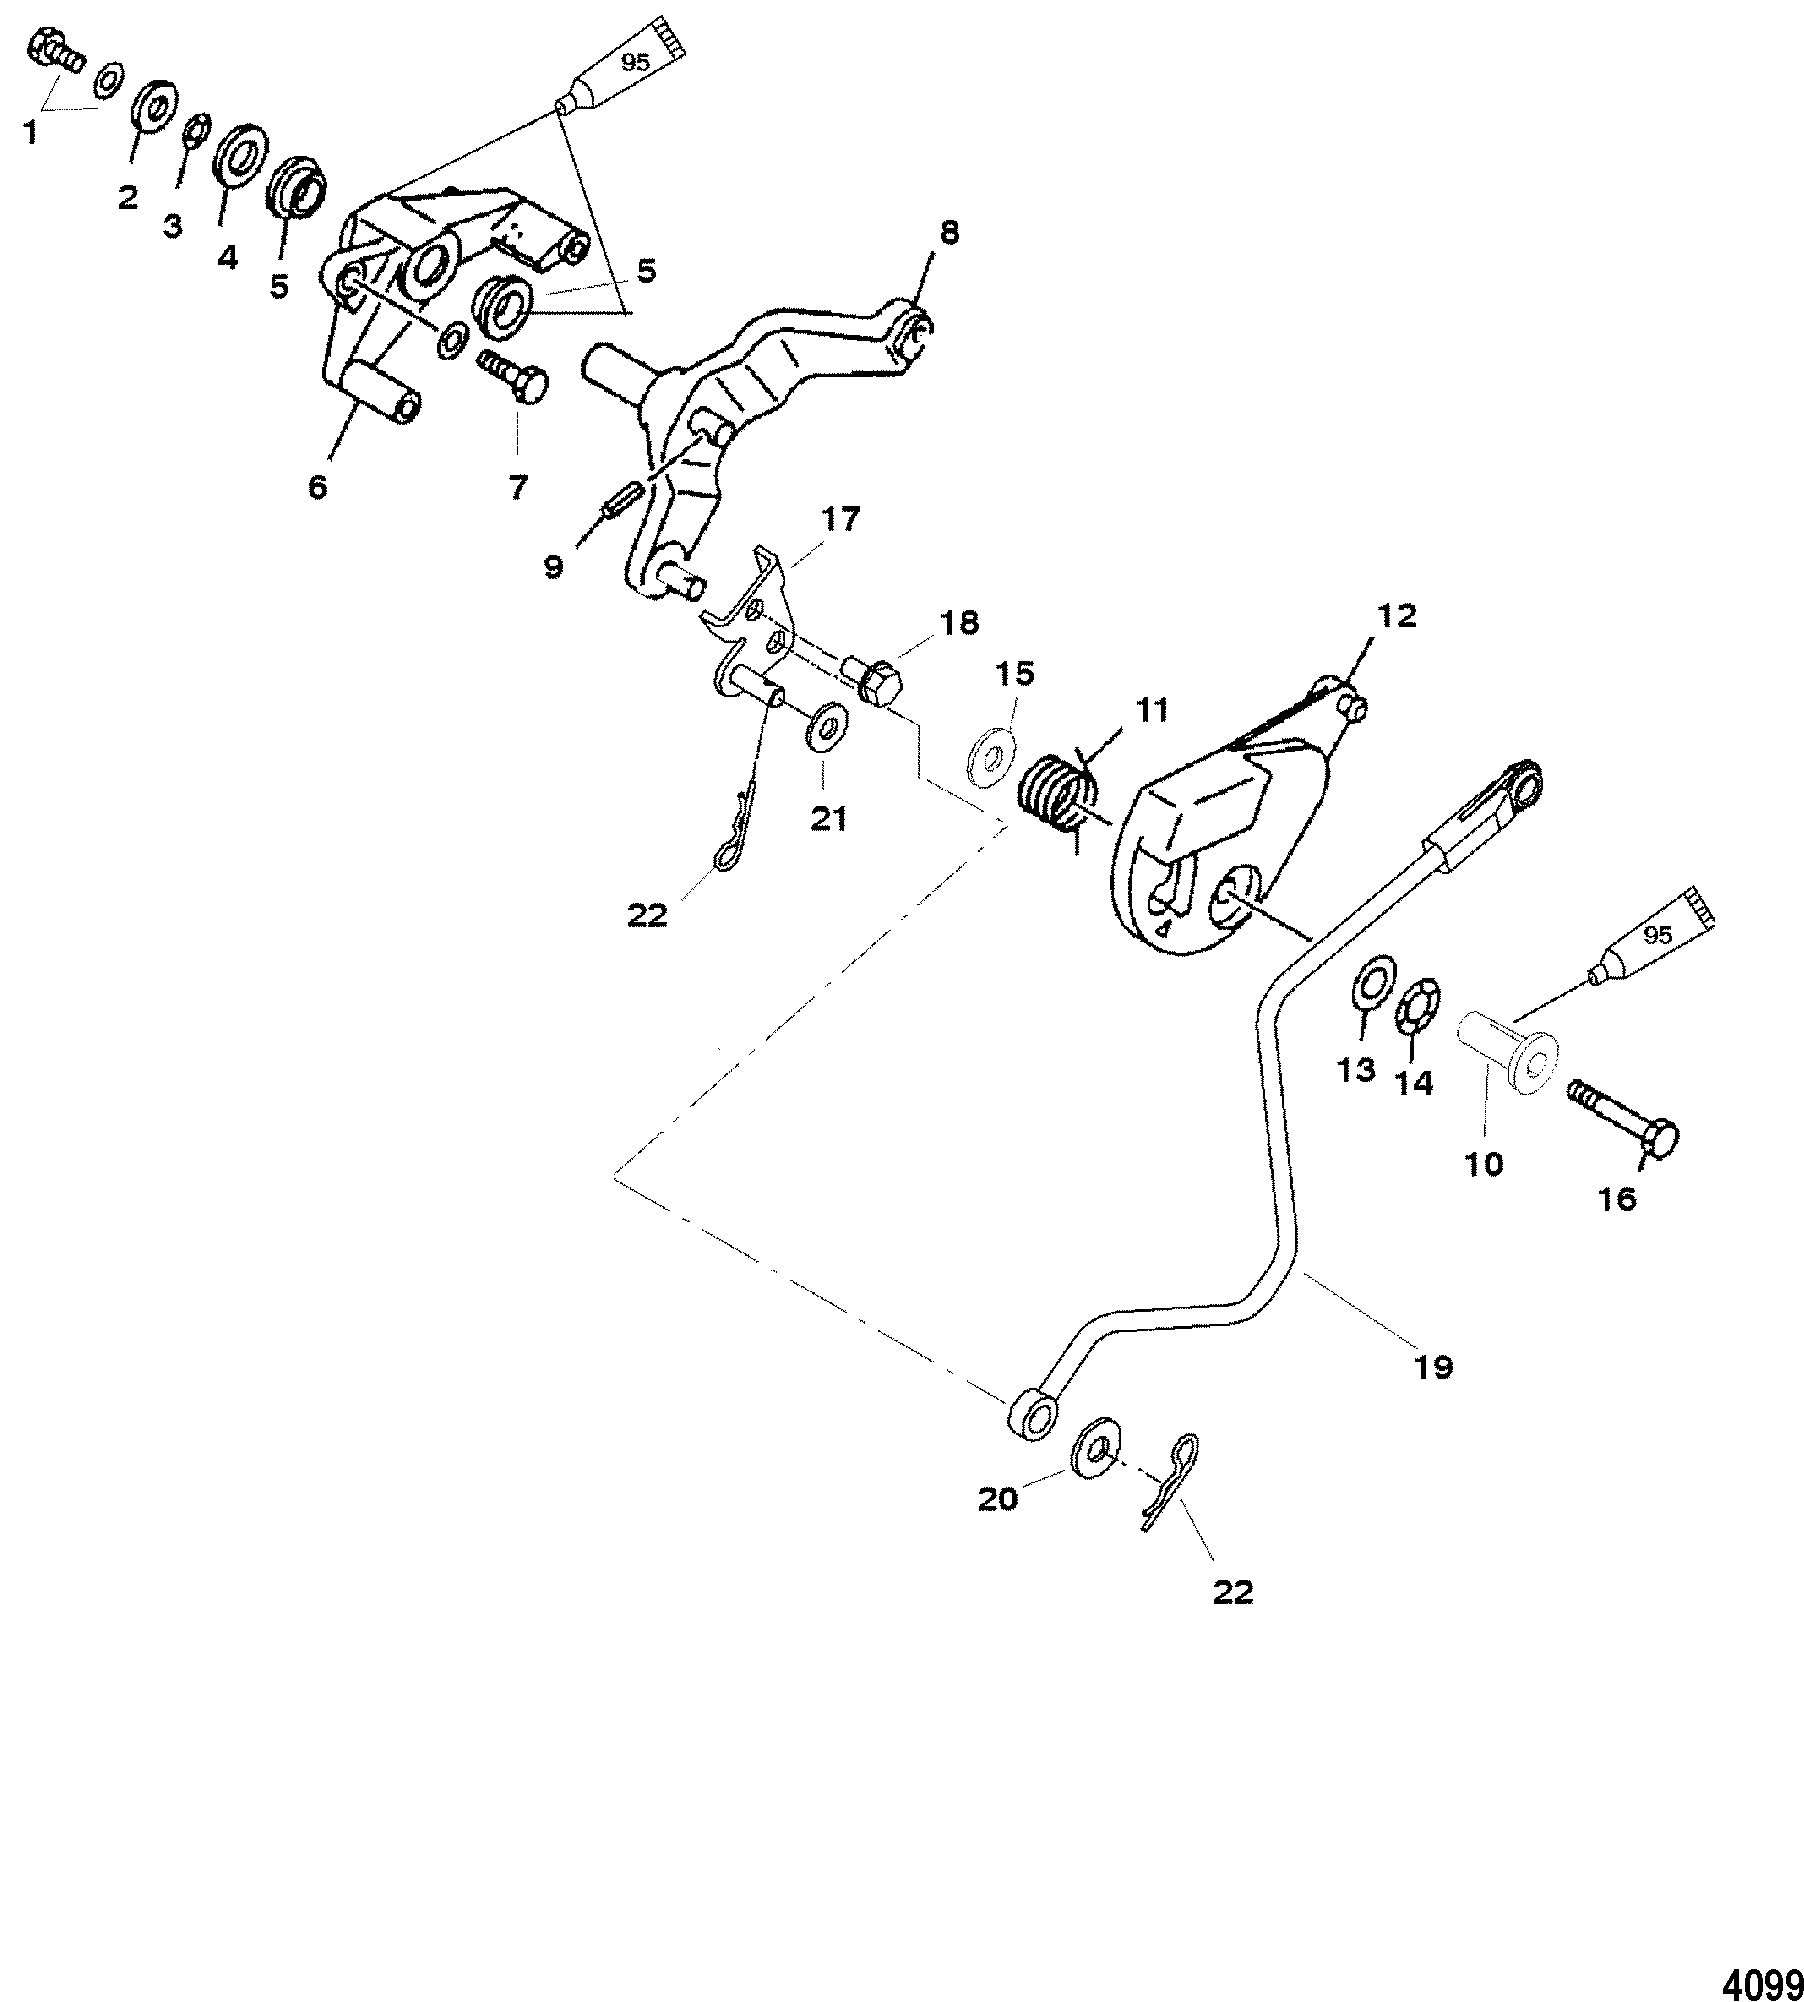 Edelbrock 1406 Diagram